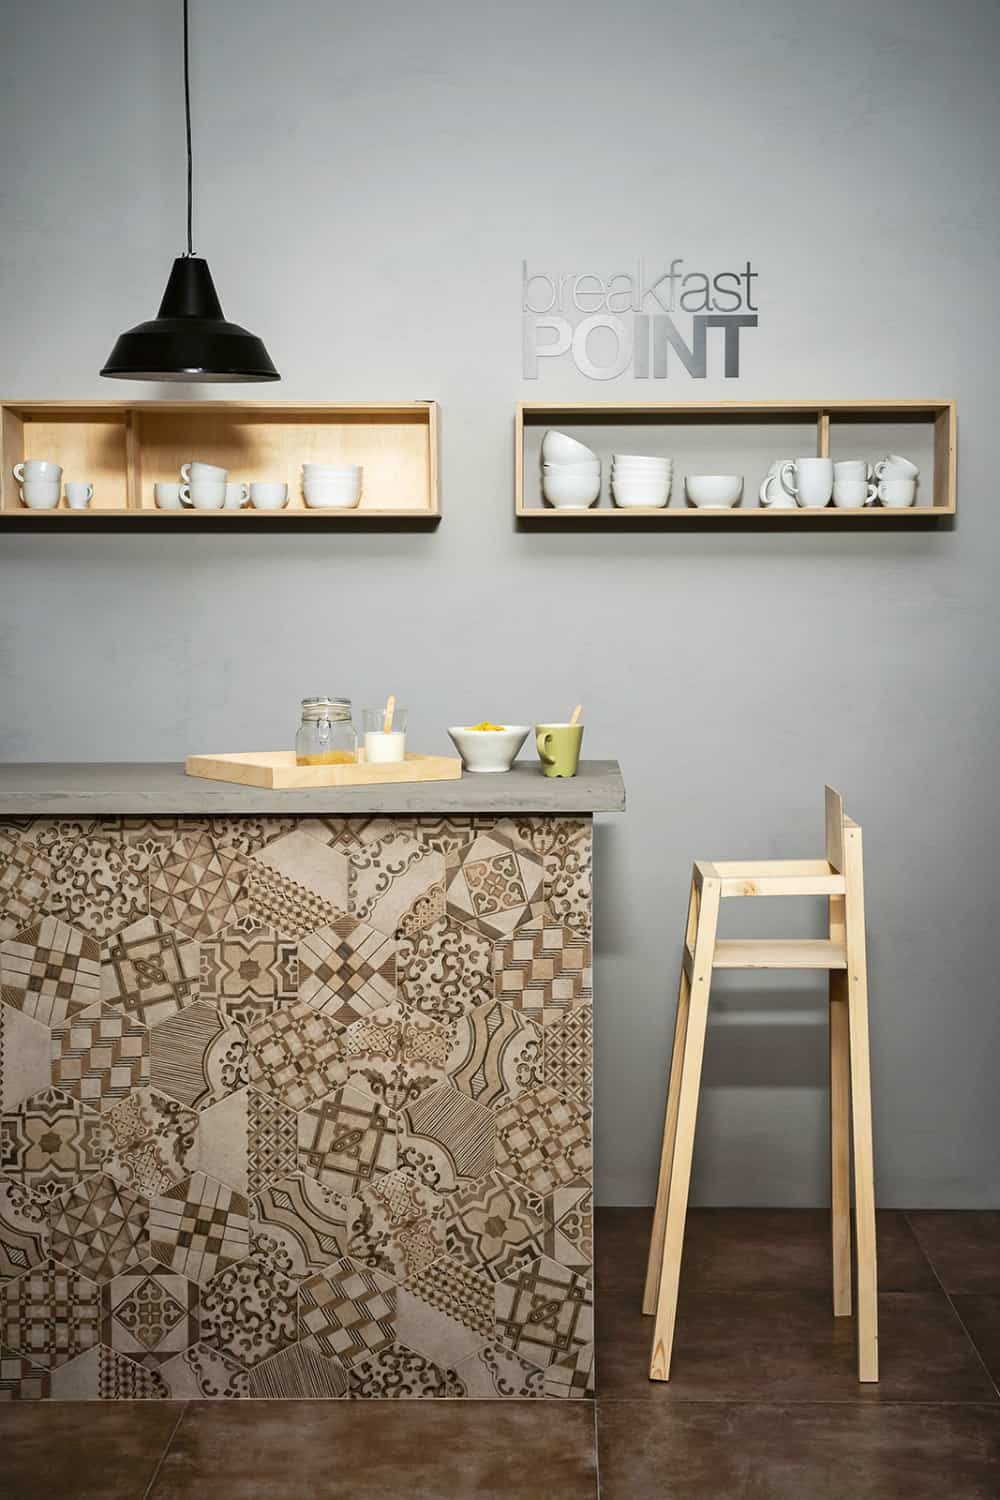 tiles-from-marazzis-clays-collection